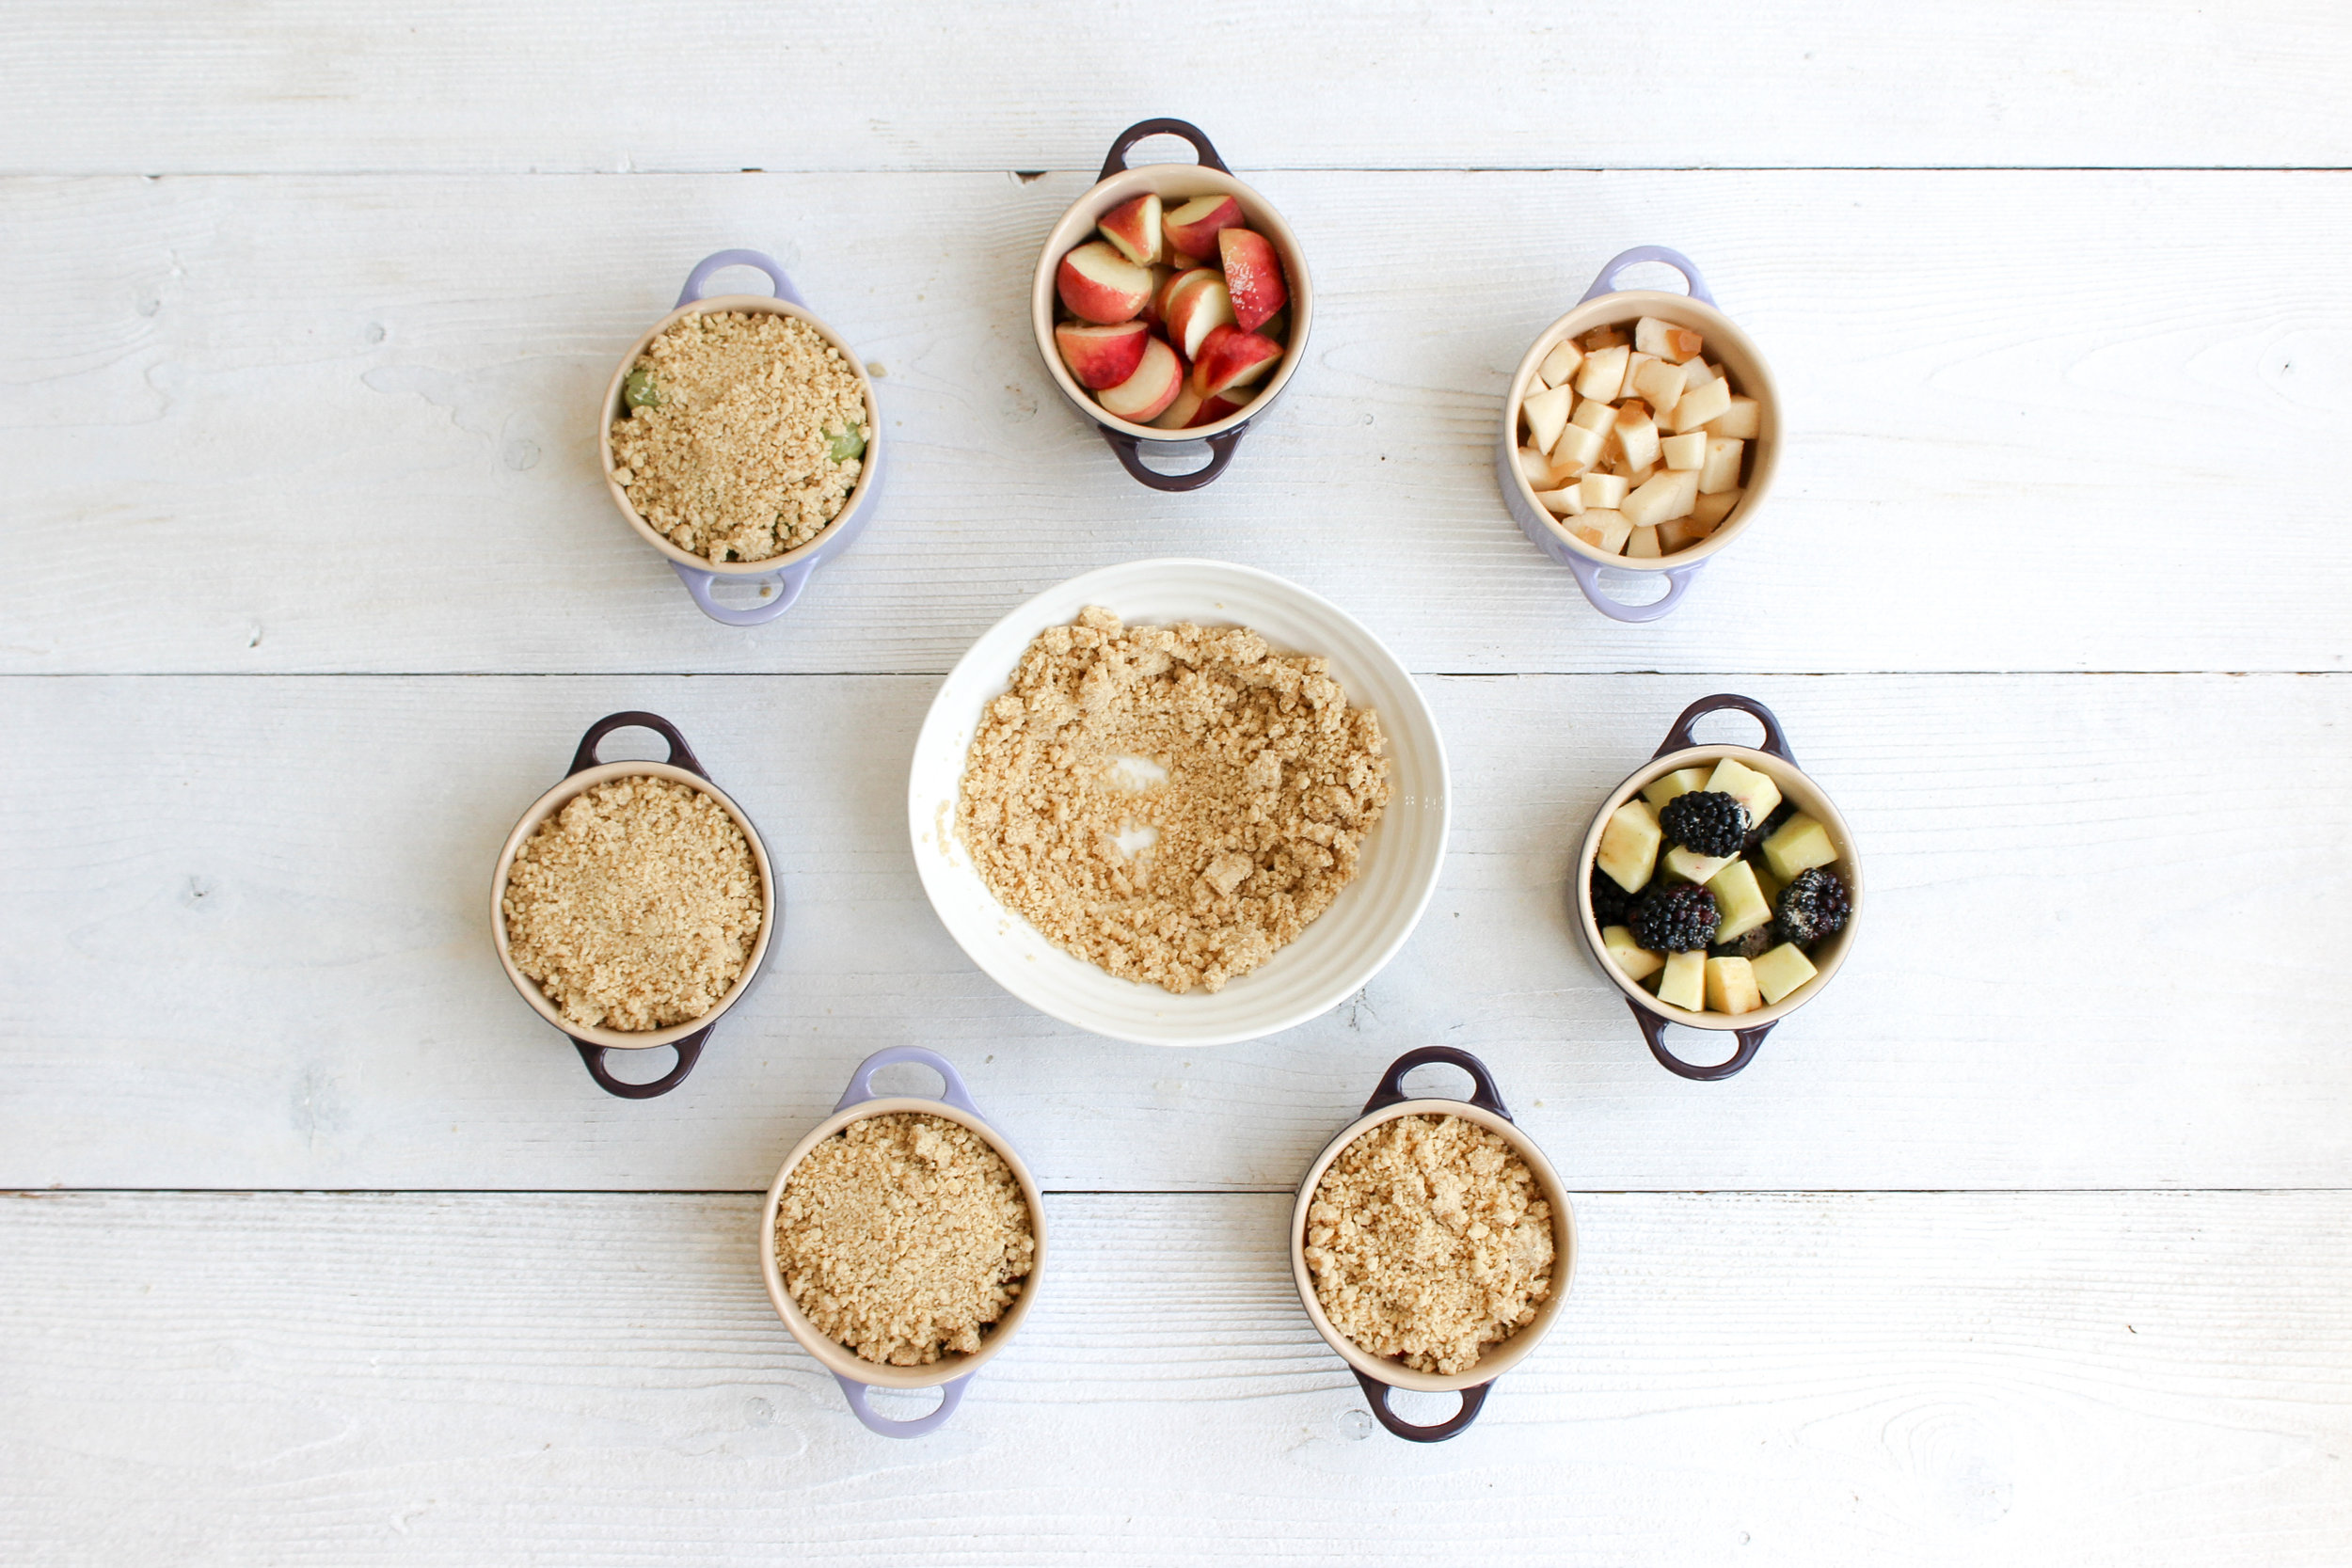 Best_Ever_Crumble_Recipes_Vegan_Gluten_Free_The_Organic_Cookery_School IMG_8320.jpg